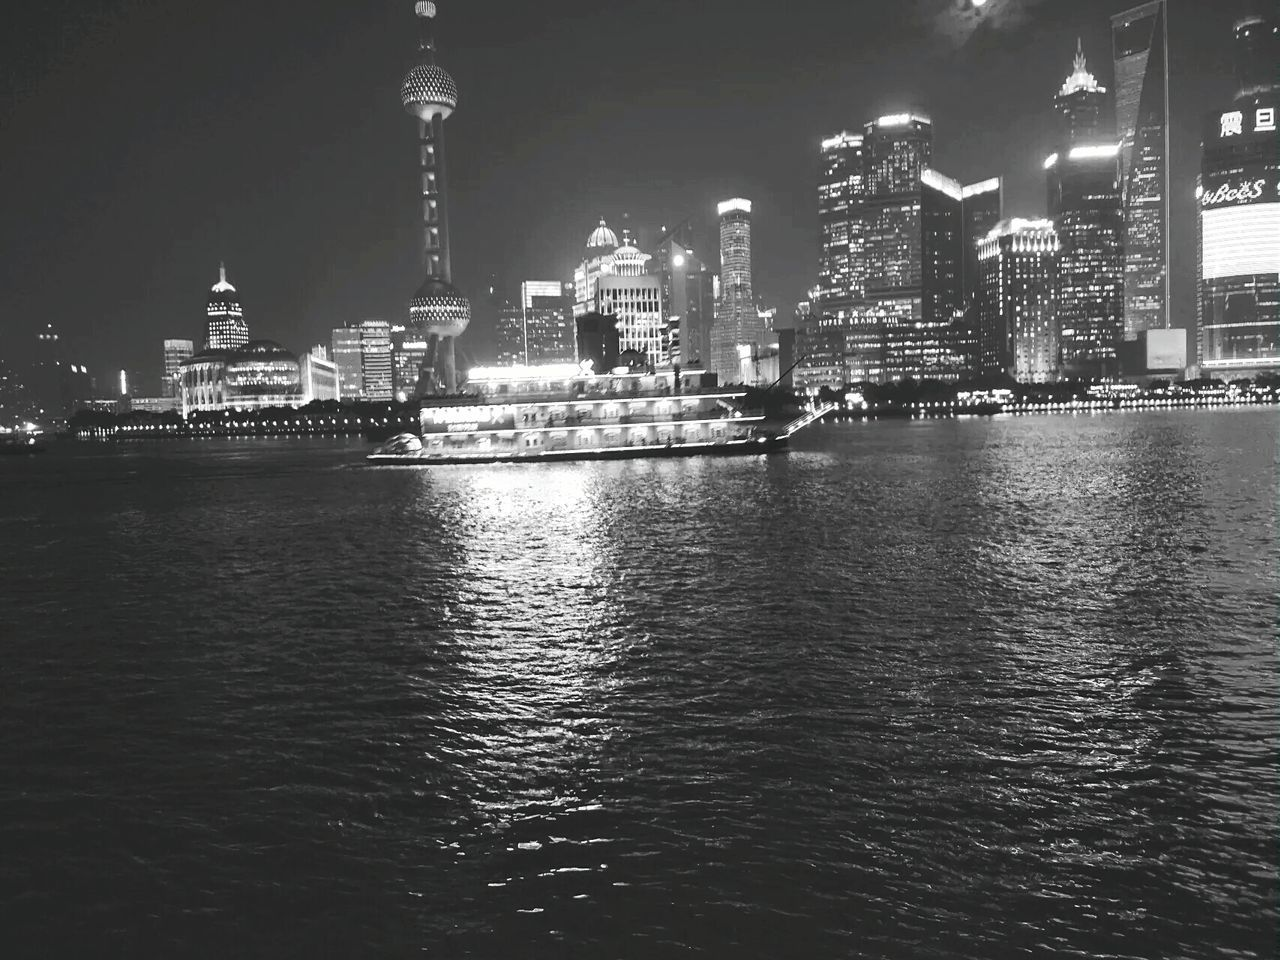 building exterior, architecture, night, built structure, illuminated, water, waterfront, city, travel destinations, outdoors, tourism, skyscraper, nautical vessel, sky, urban skyline, no people, cityscape, nature